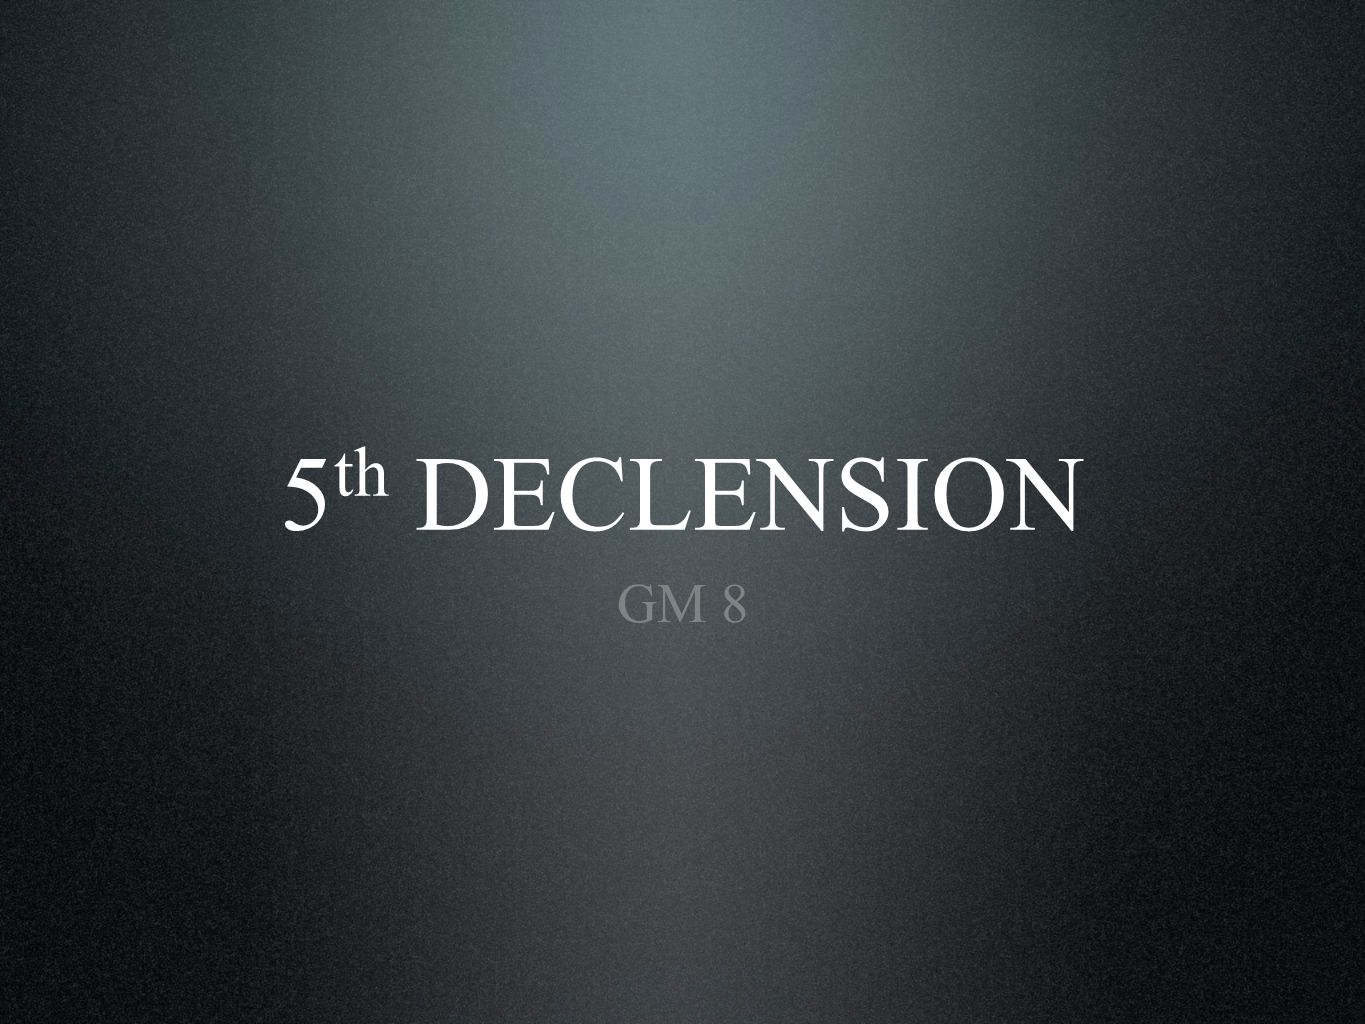 5 th DECLENSION GM 8